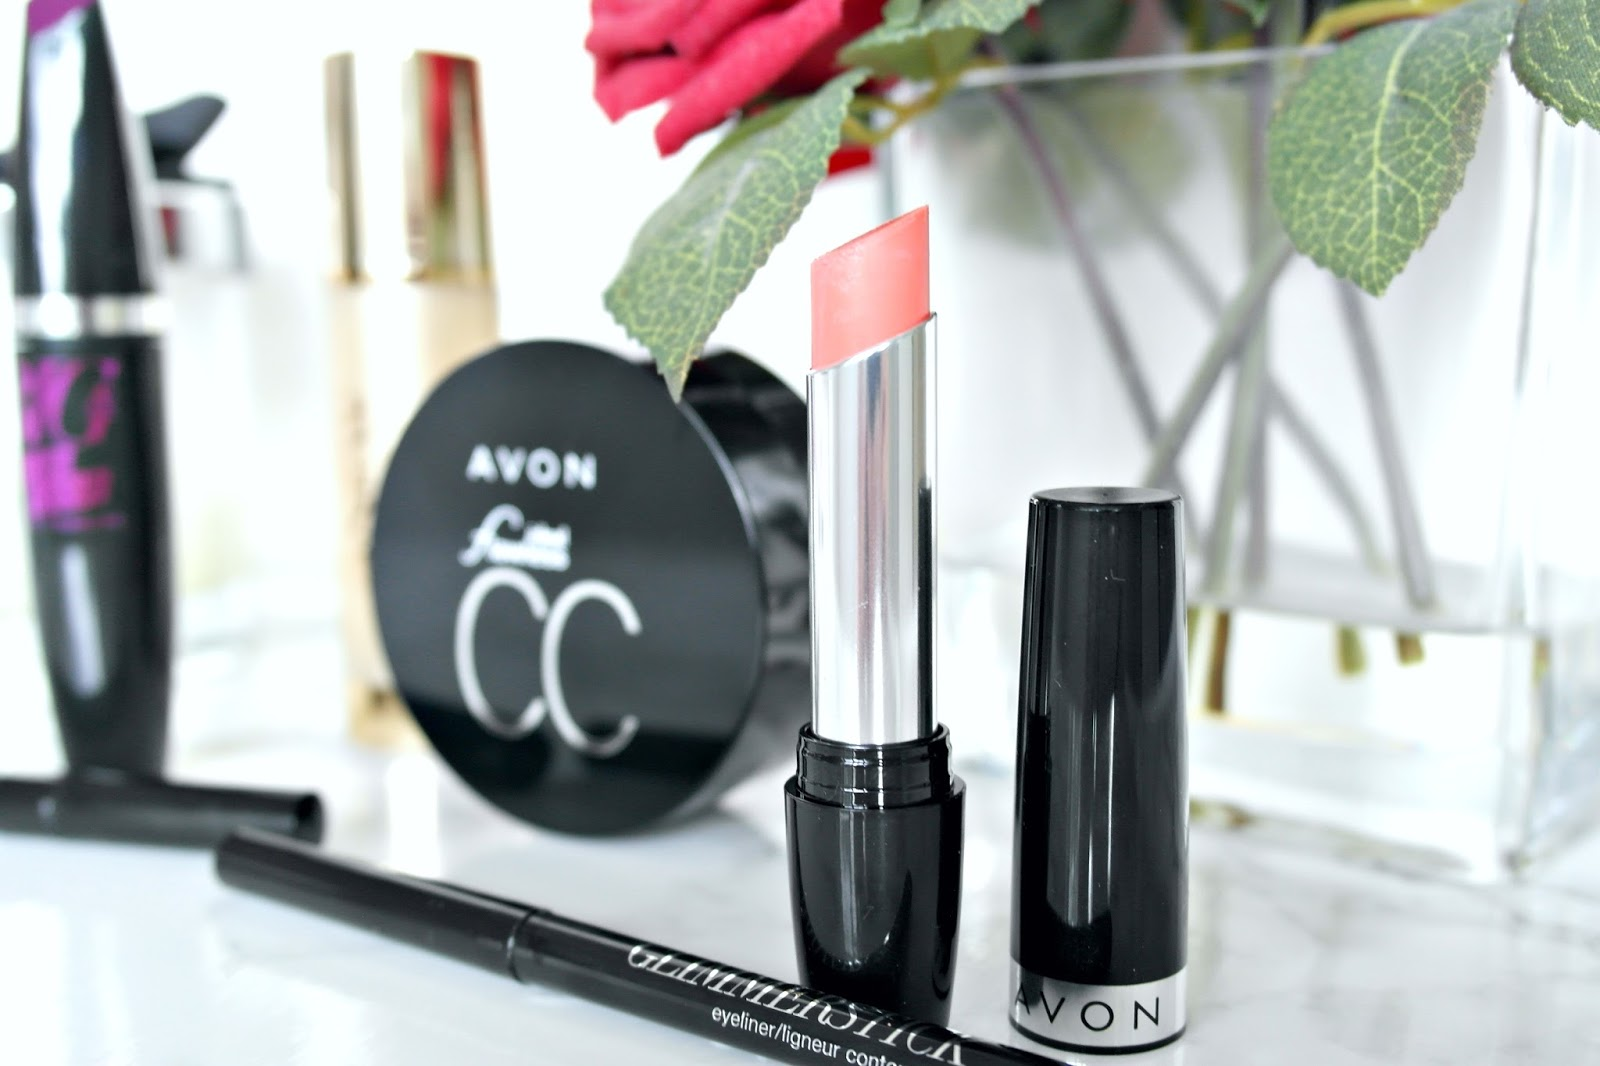 Avon makeup review, beauty blogger